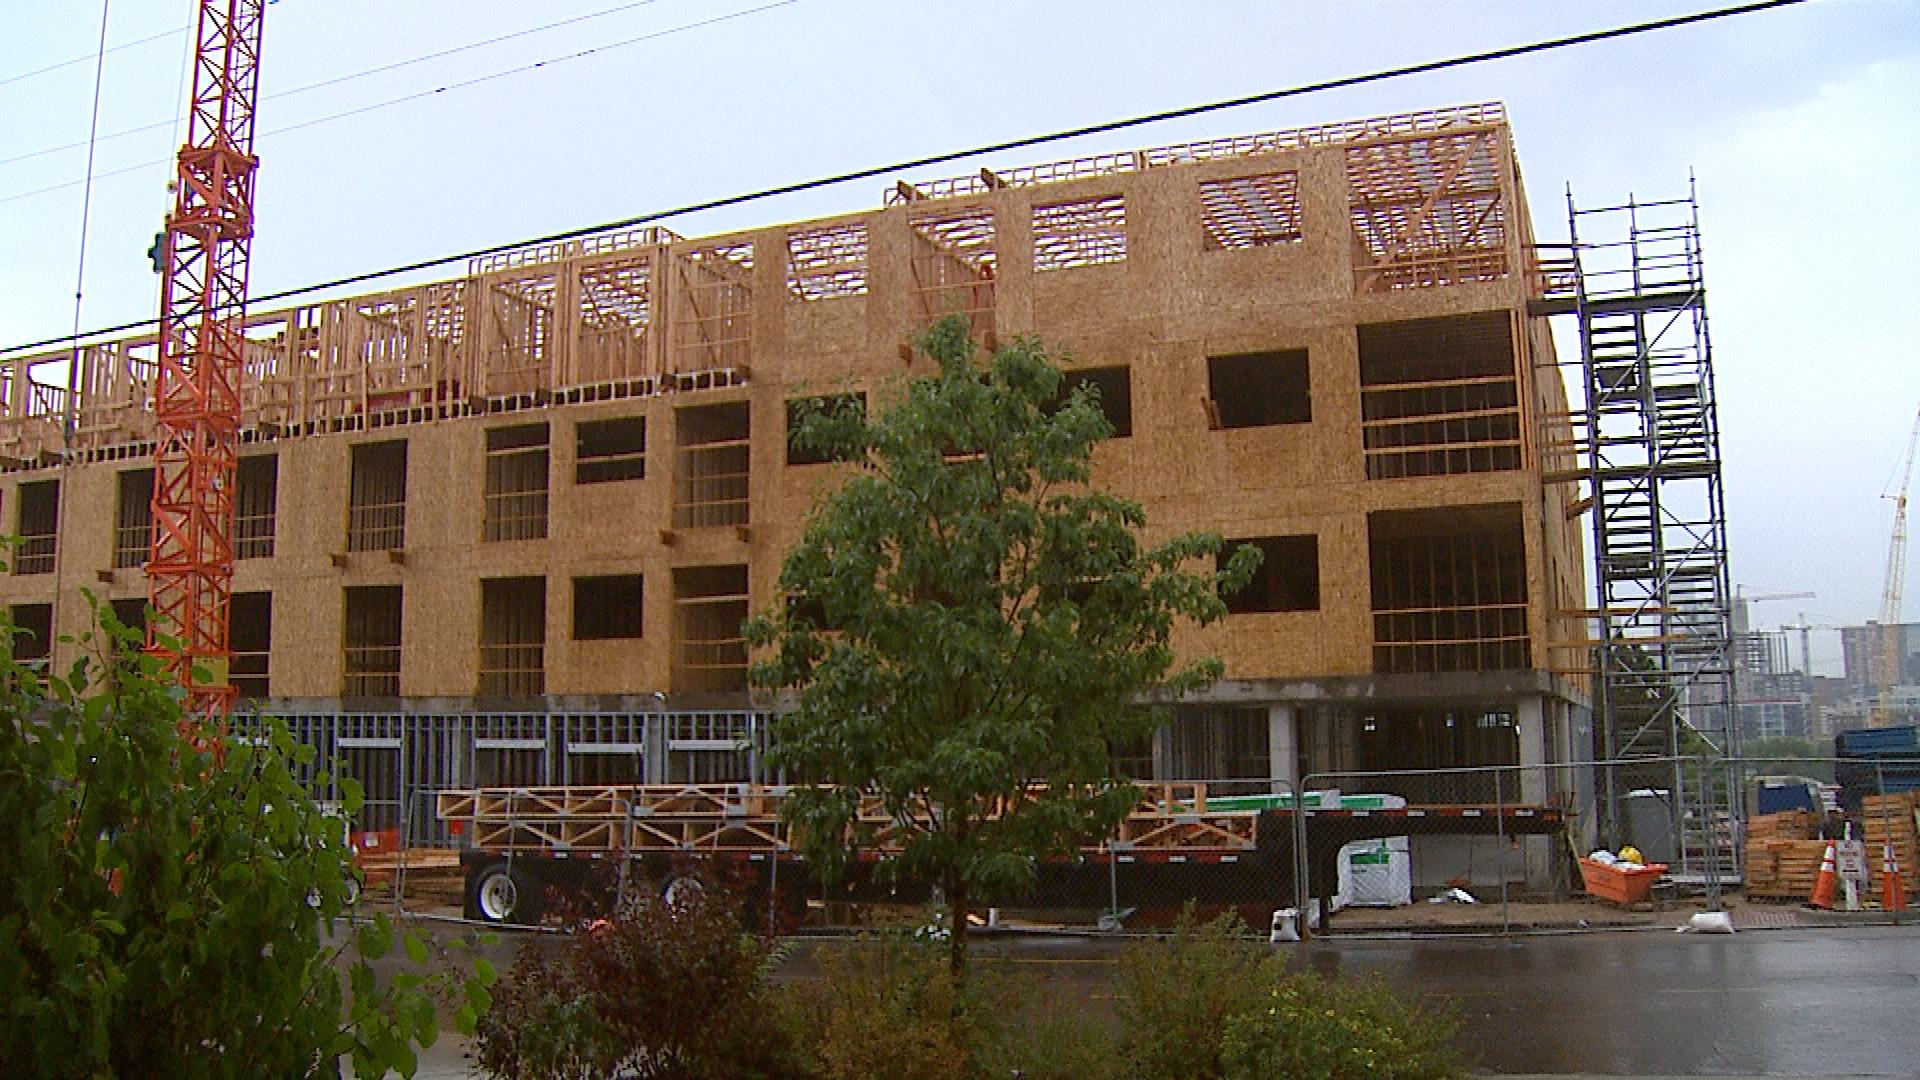 A housing complex under construction in Denver (credit: CBS)